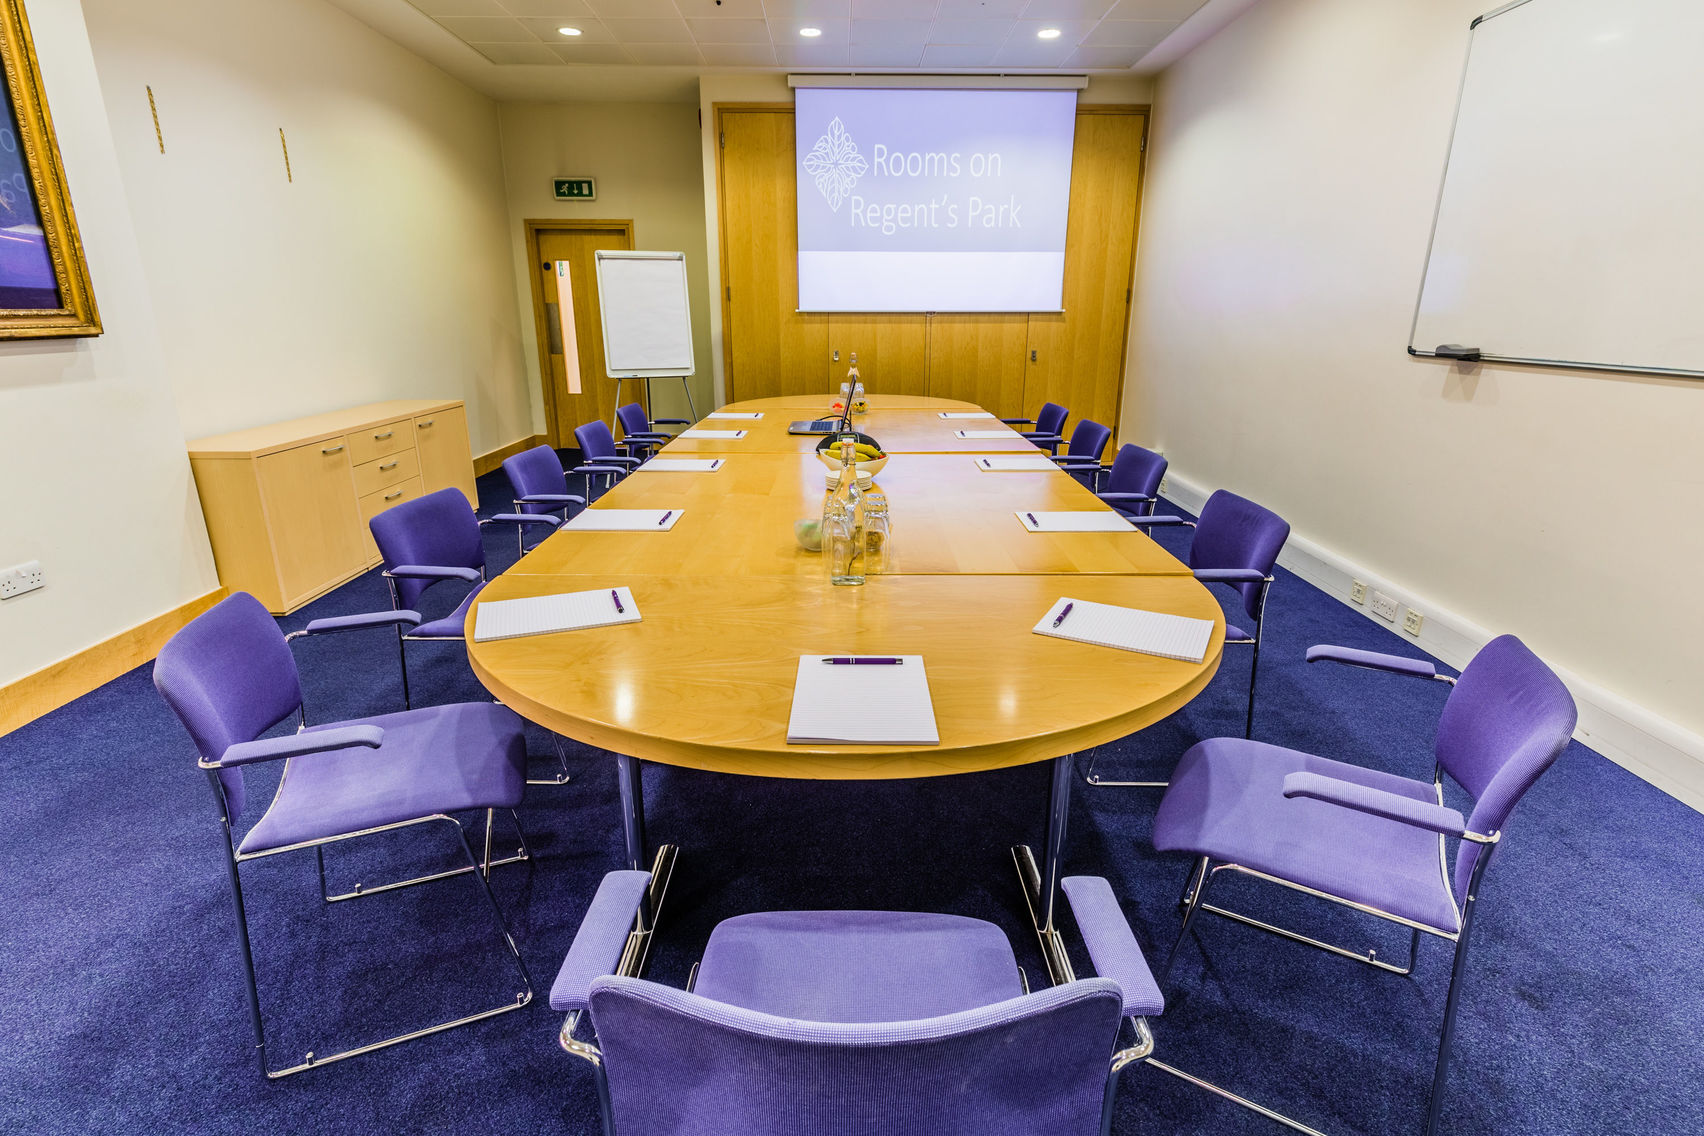 Conference Room, Rooms on Regent's Park